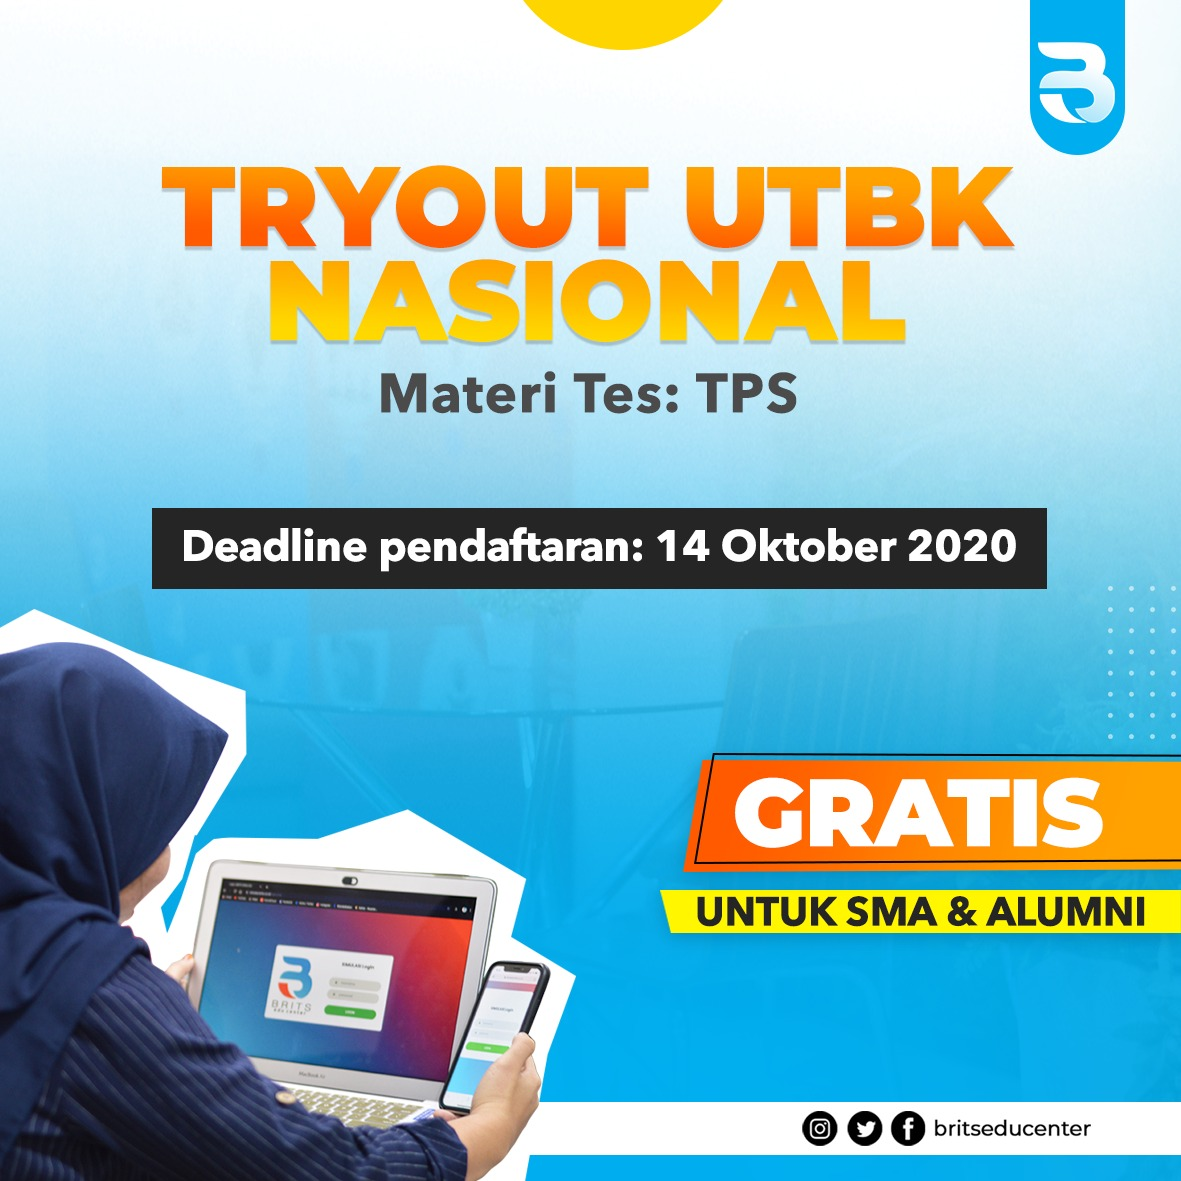 Try Out UTBK TPS GRATISS Brits Indonesia 2021 #SuksesUTBK2021